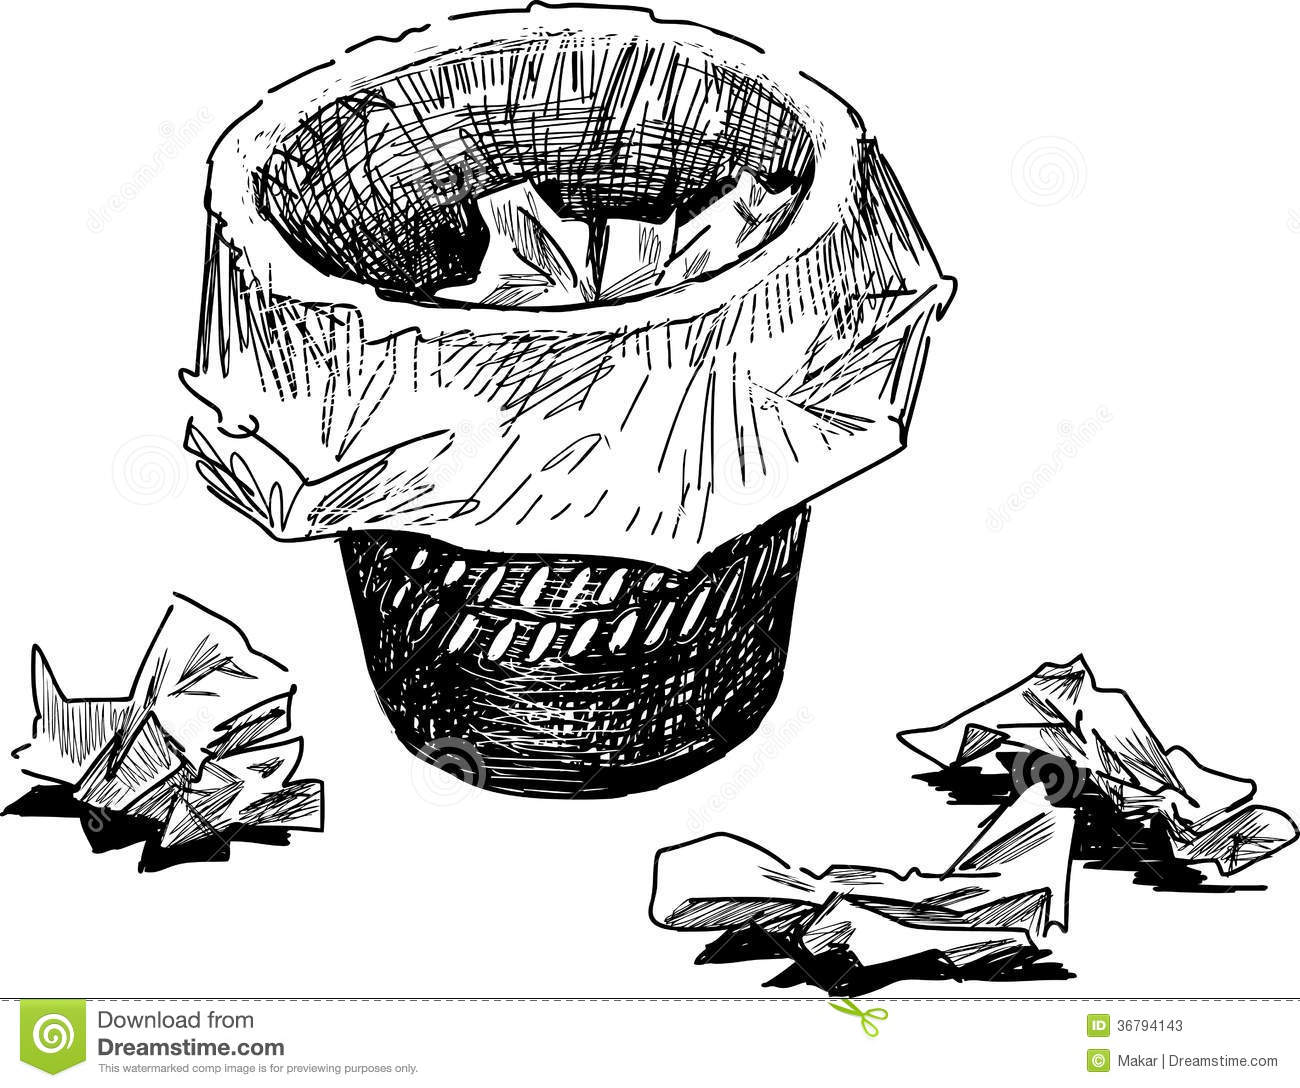 Wastebasket stock photos image 36794143 for Art from waste paper